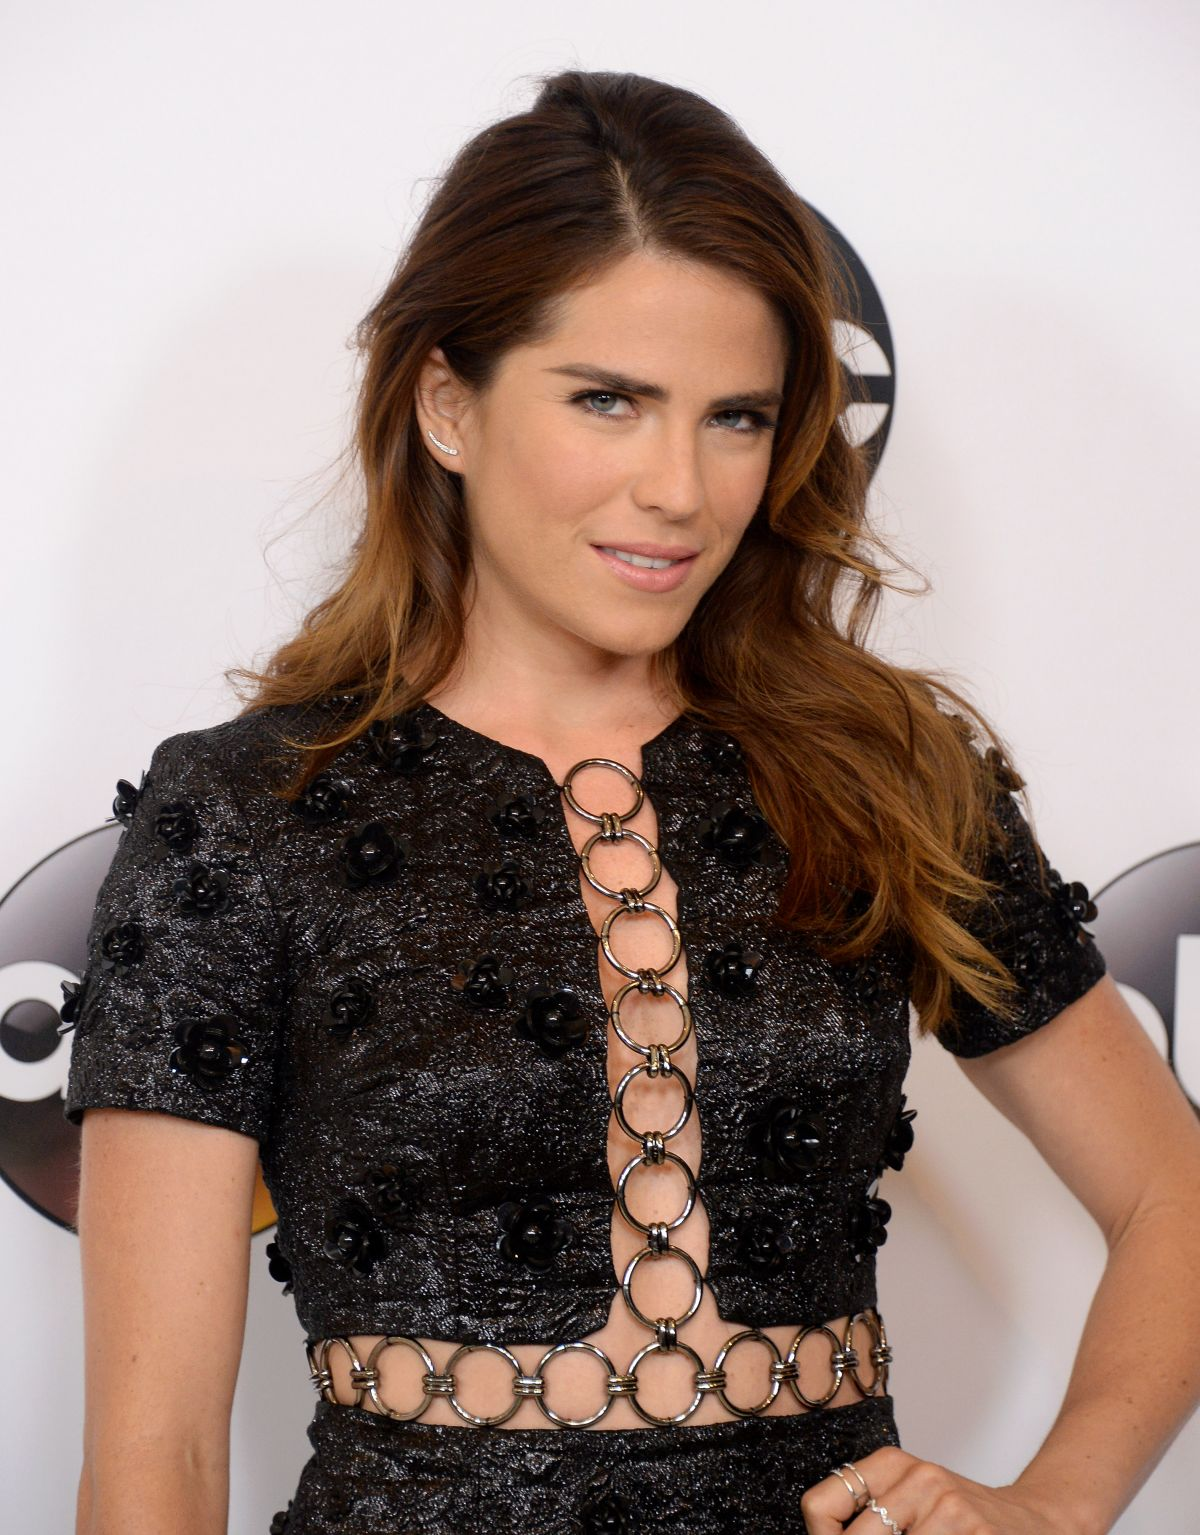 HQ Photos of Jacob's Ladder actress Karla Souza at Disney ABC Television TCA Summer Press Tour in Beverly Hills